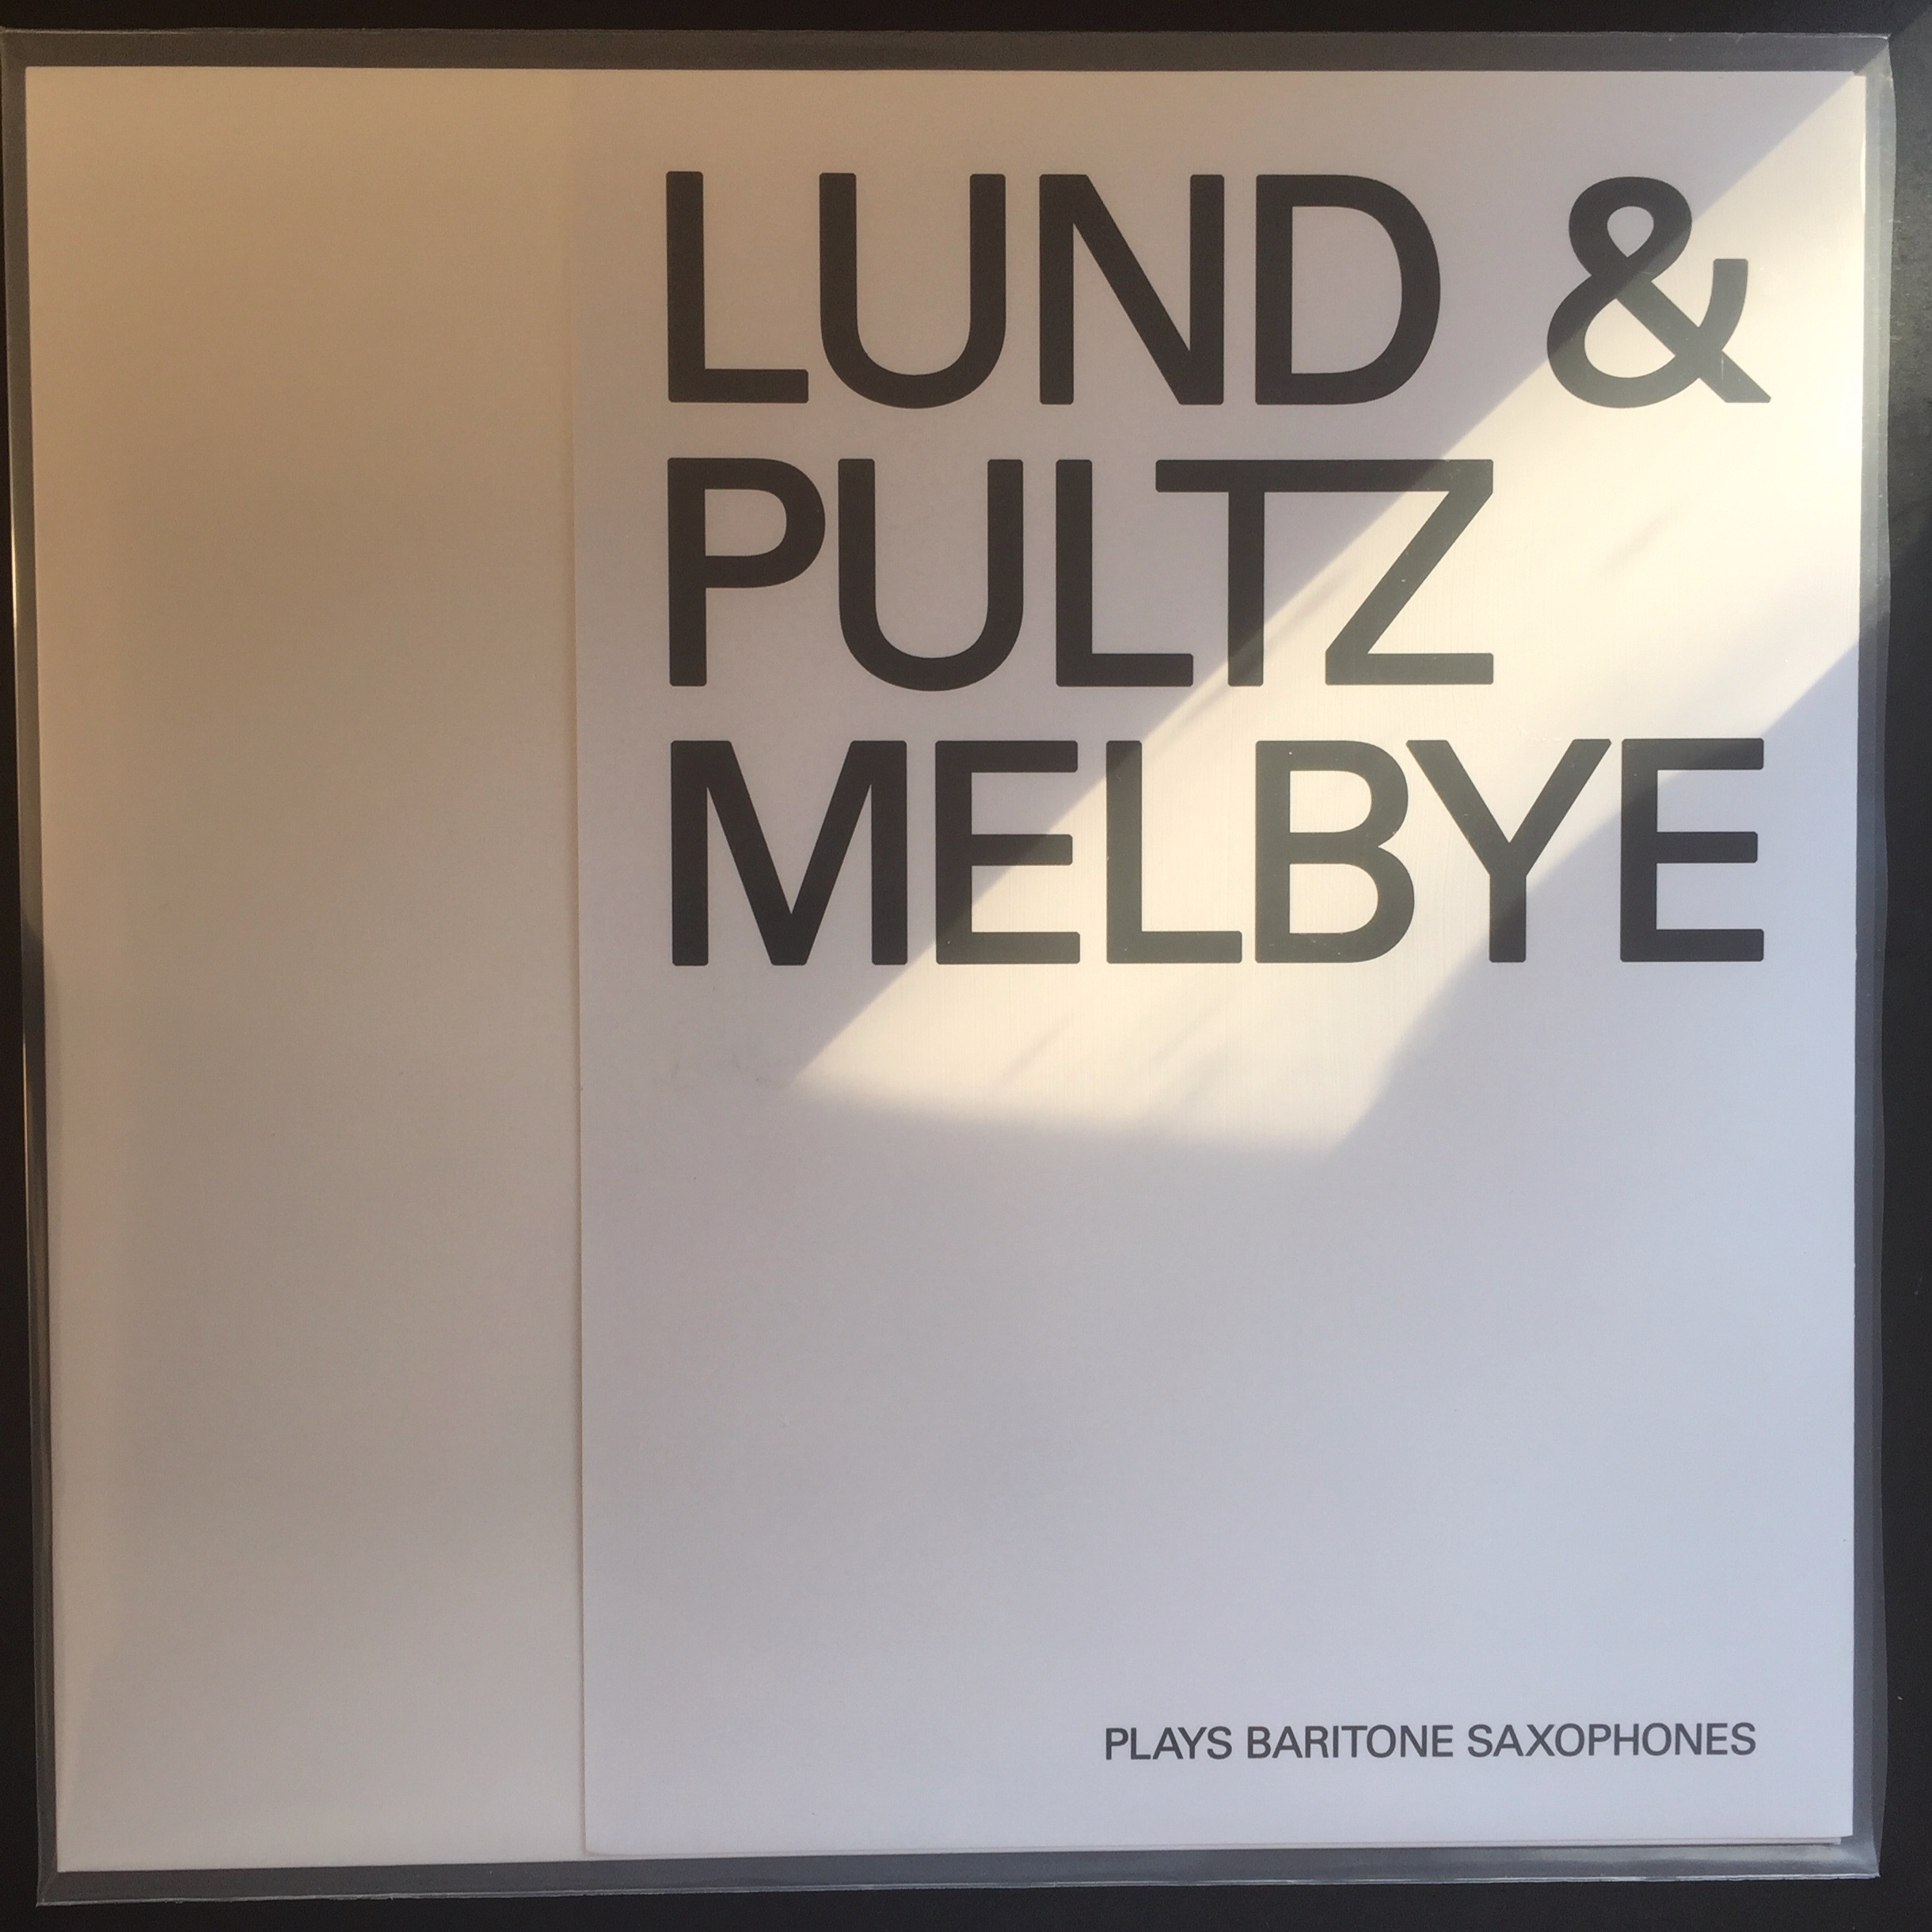 Lund / Pultz Melbye - Plays Baritone Saxophones (Svala Records / Aether Productions 2018)  Johs Lund & HPM: Baritone saxophones